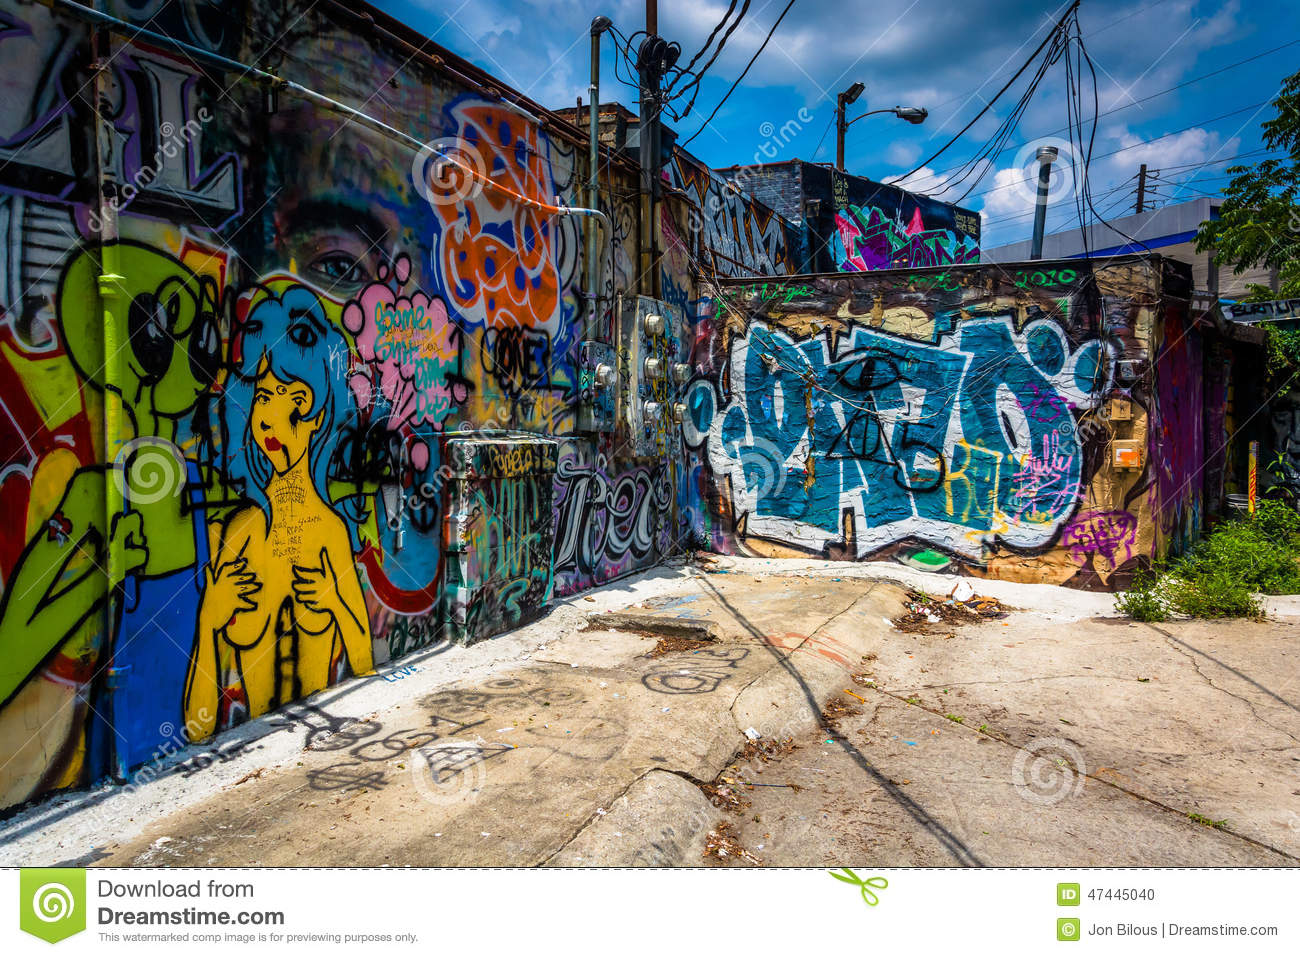 Graffiti on walls in an alley in little five points atlanta ge stock photo